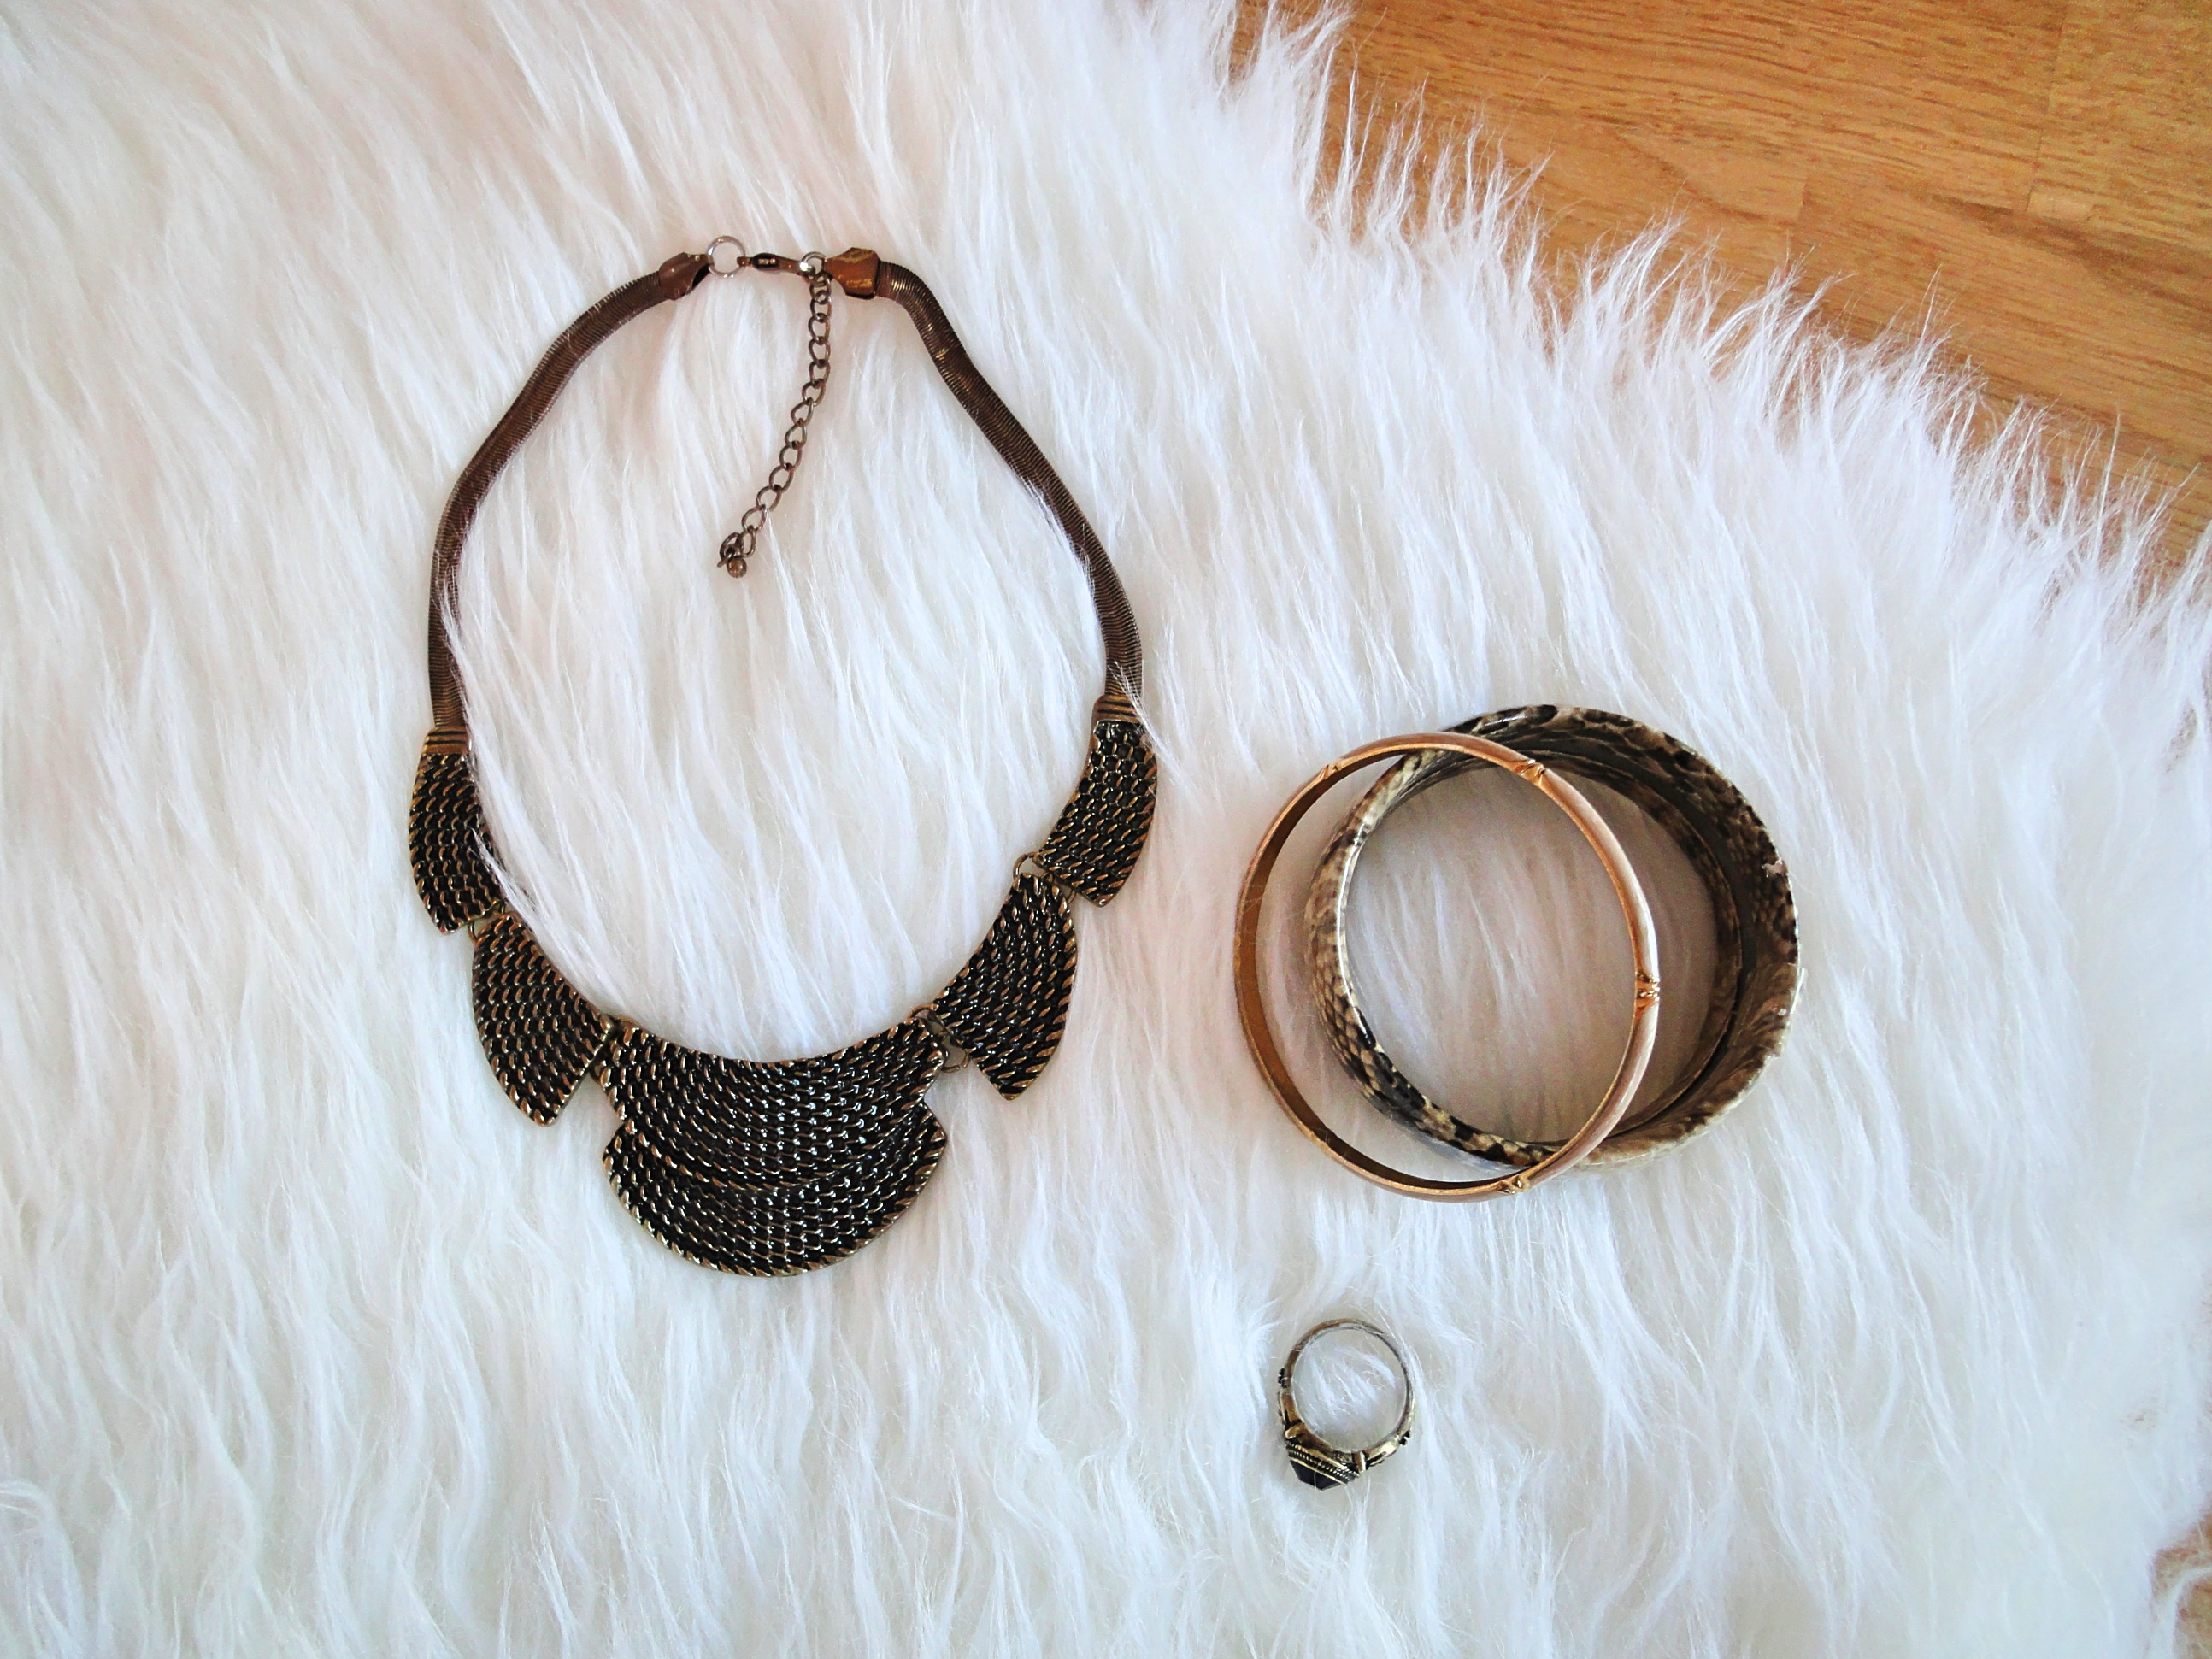 Necklace, bangle and ring in simple tone